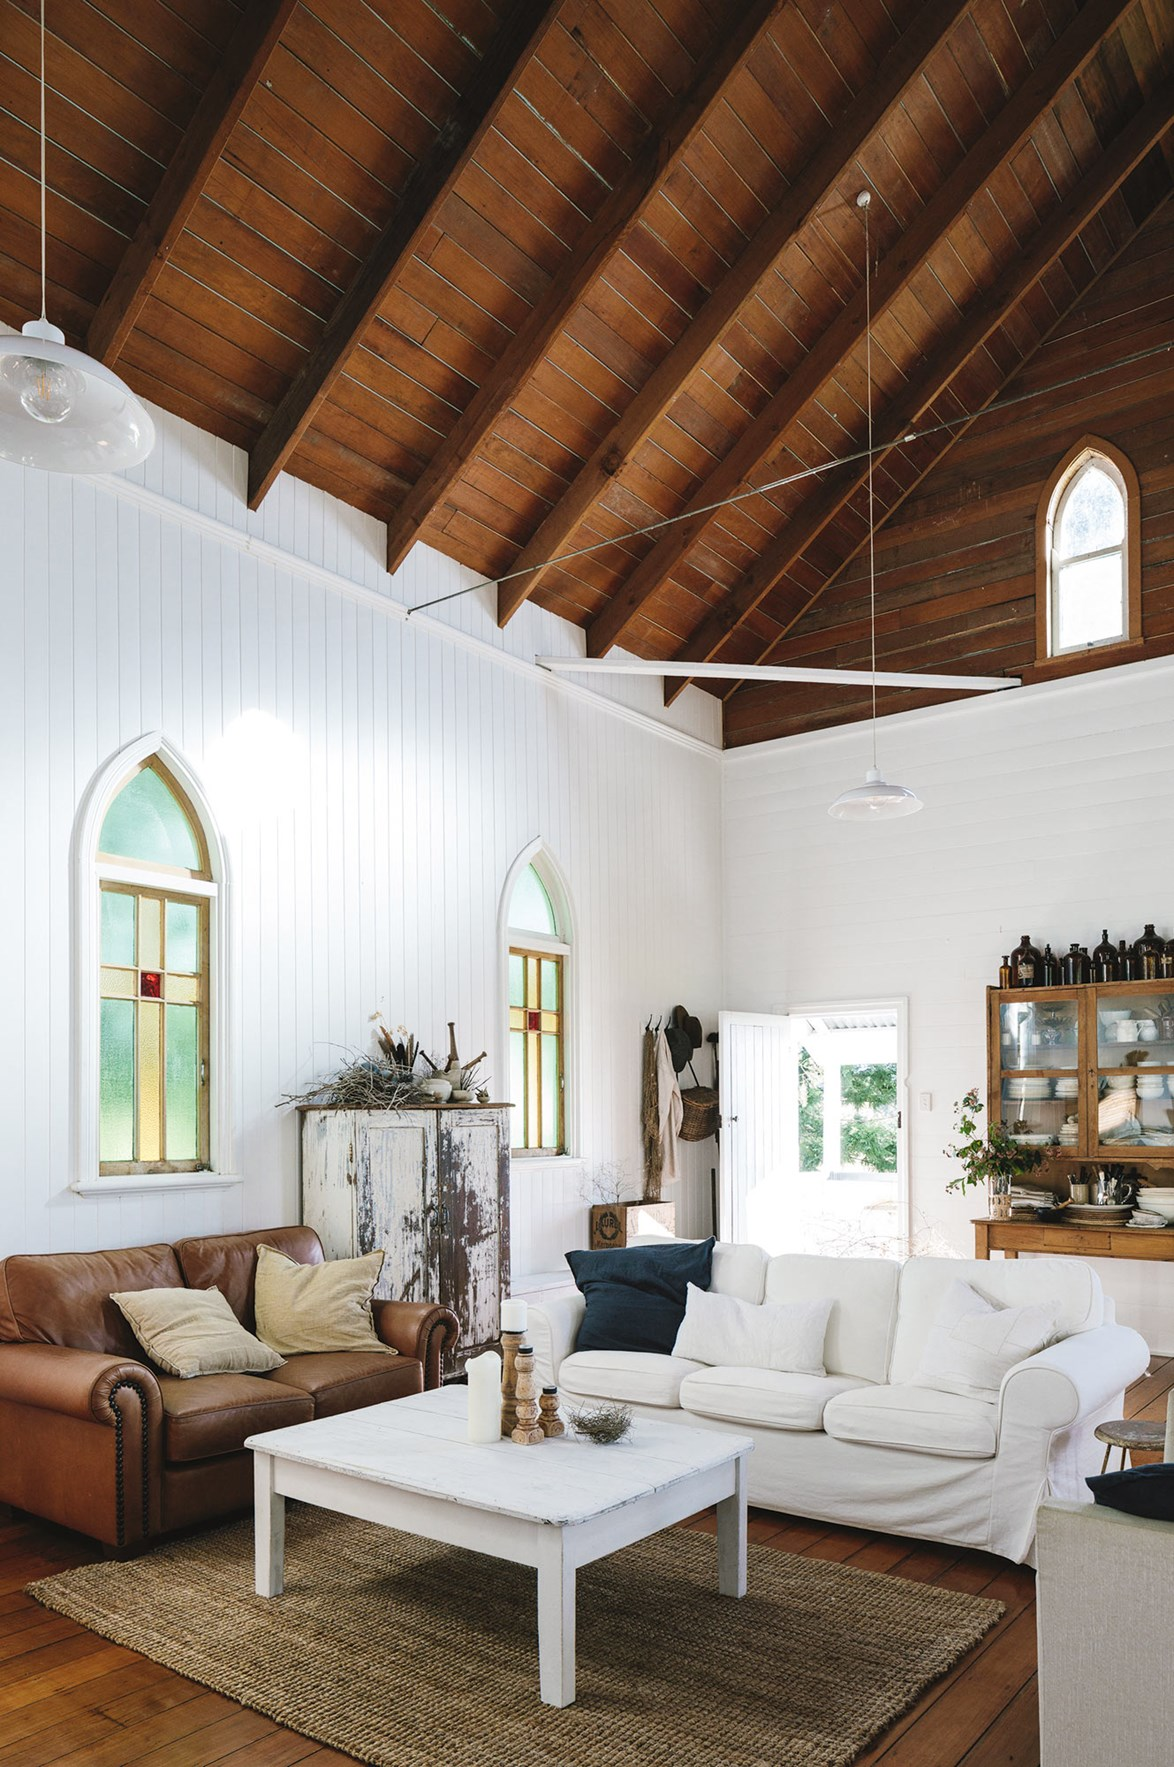 "This [eight-by-18 metre former church in Boonah](https://www.homestolove.com.au/restored-qld-church-full-of-divine-treasures-13984, Queensland|target=""_blank"") - with a mezzanine level and surrounded by Norfolk Pines - has been home to the Carr family since 2010. ""I love things that tell a story of where they came from,"" says Cheryl, the owner. *Photo: Marnie Hawson / Story: Country Style*"